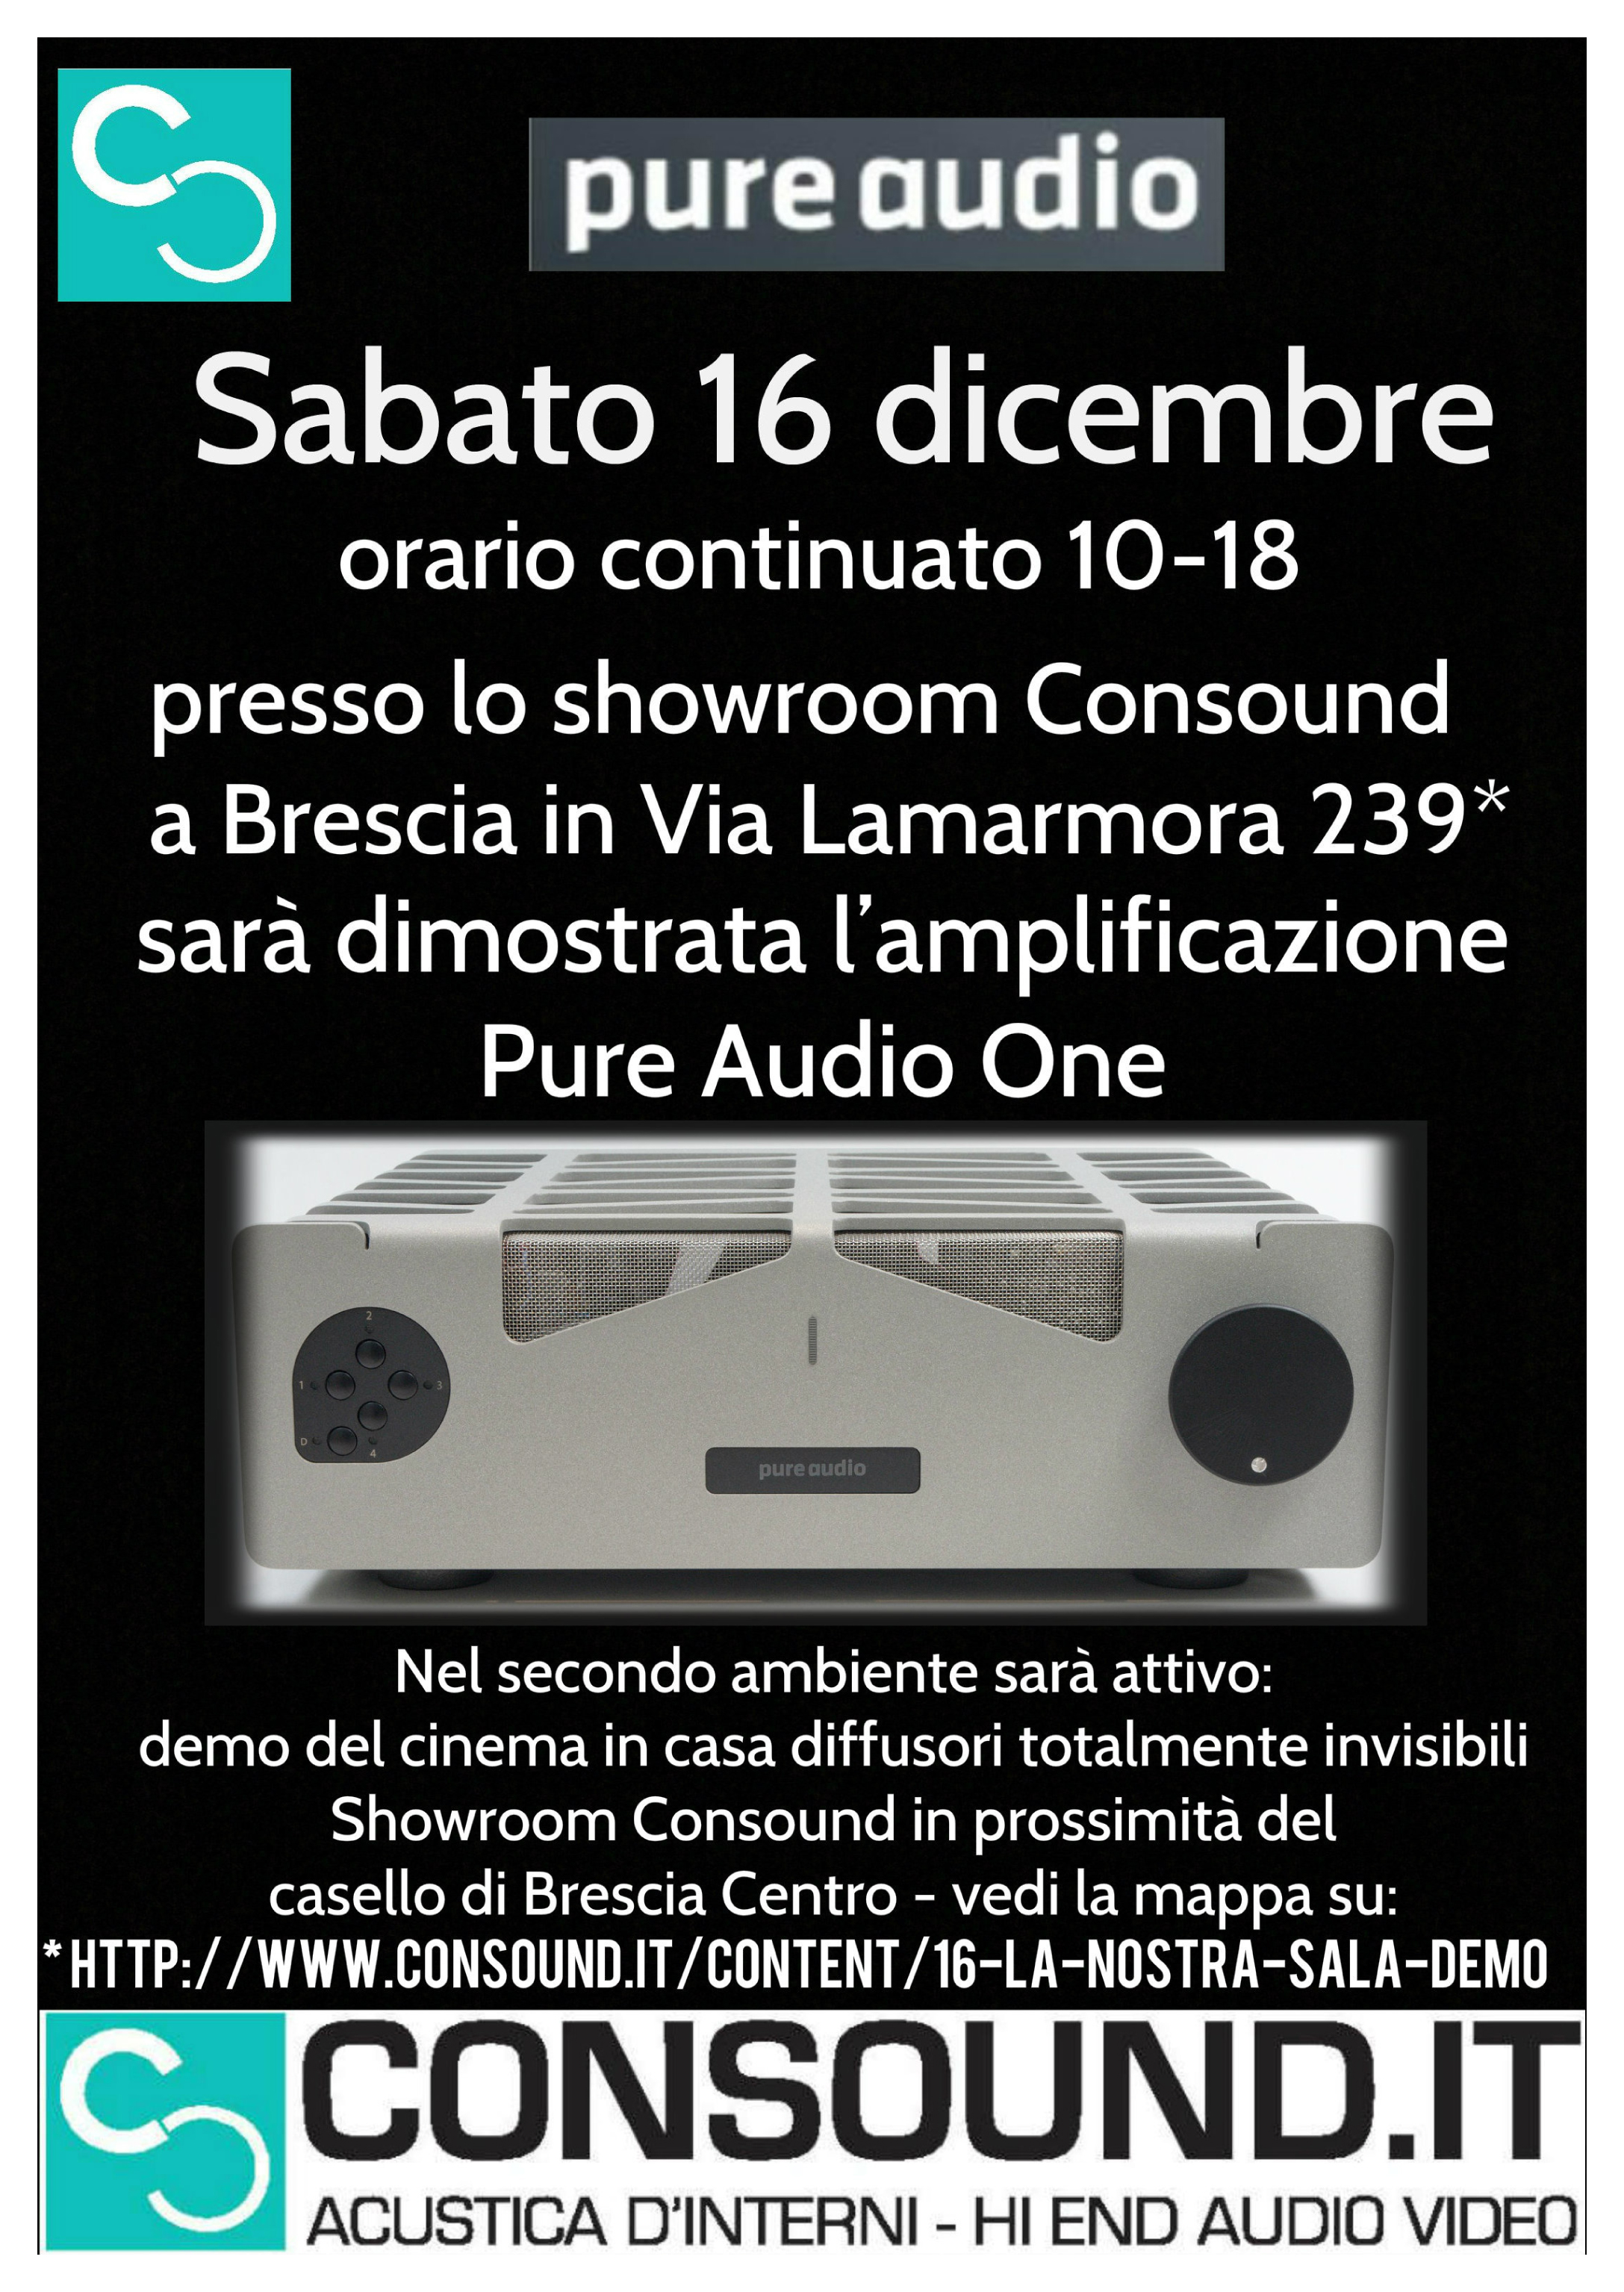 Nuovo integrato Pure Audio One da Consound